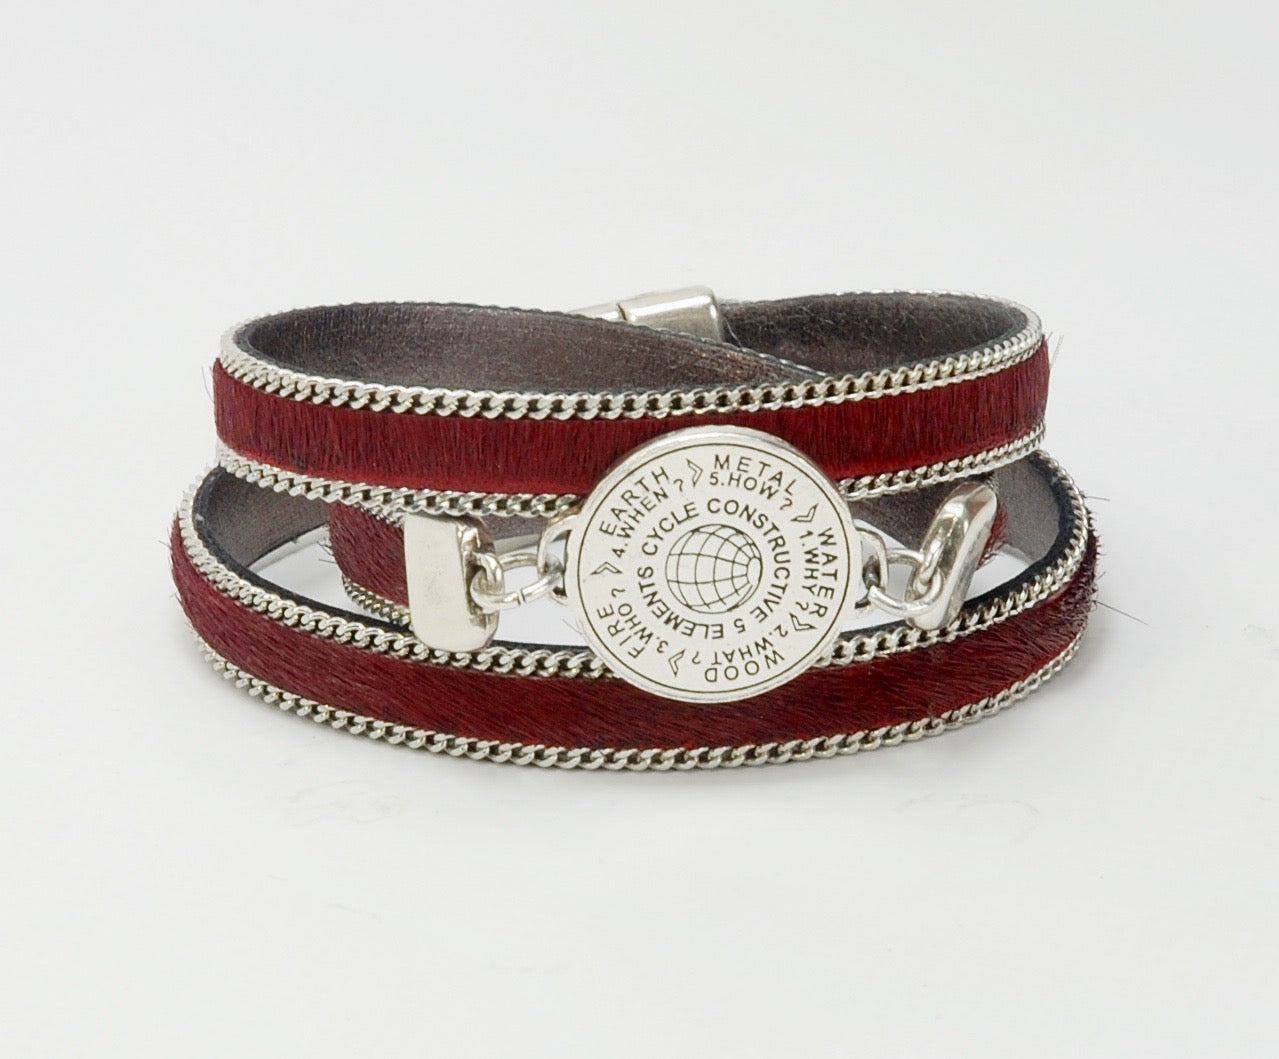 5 Elements Jewelry Bracelet or Necklace burgundy color leather